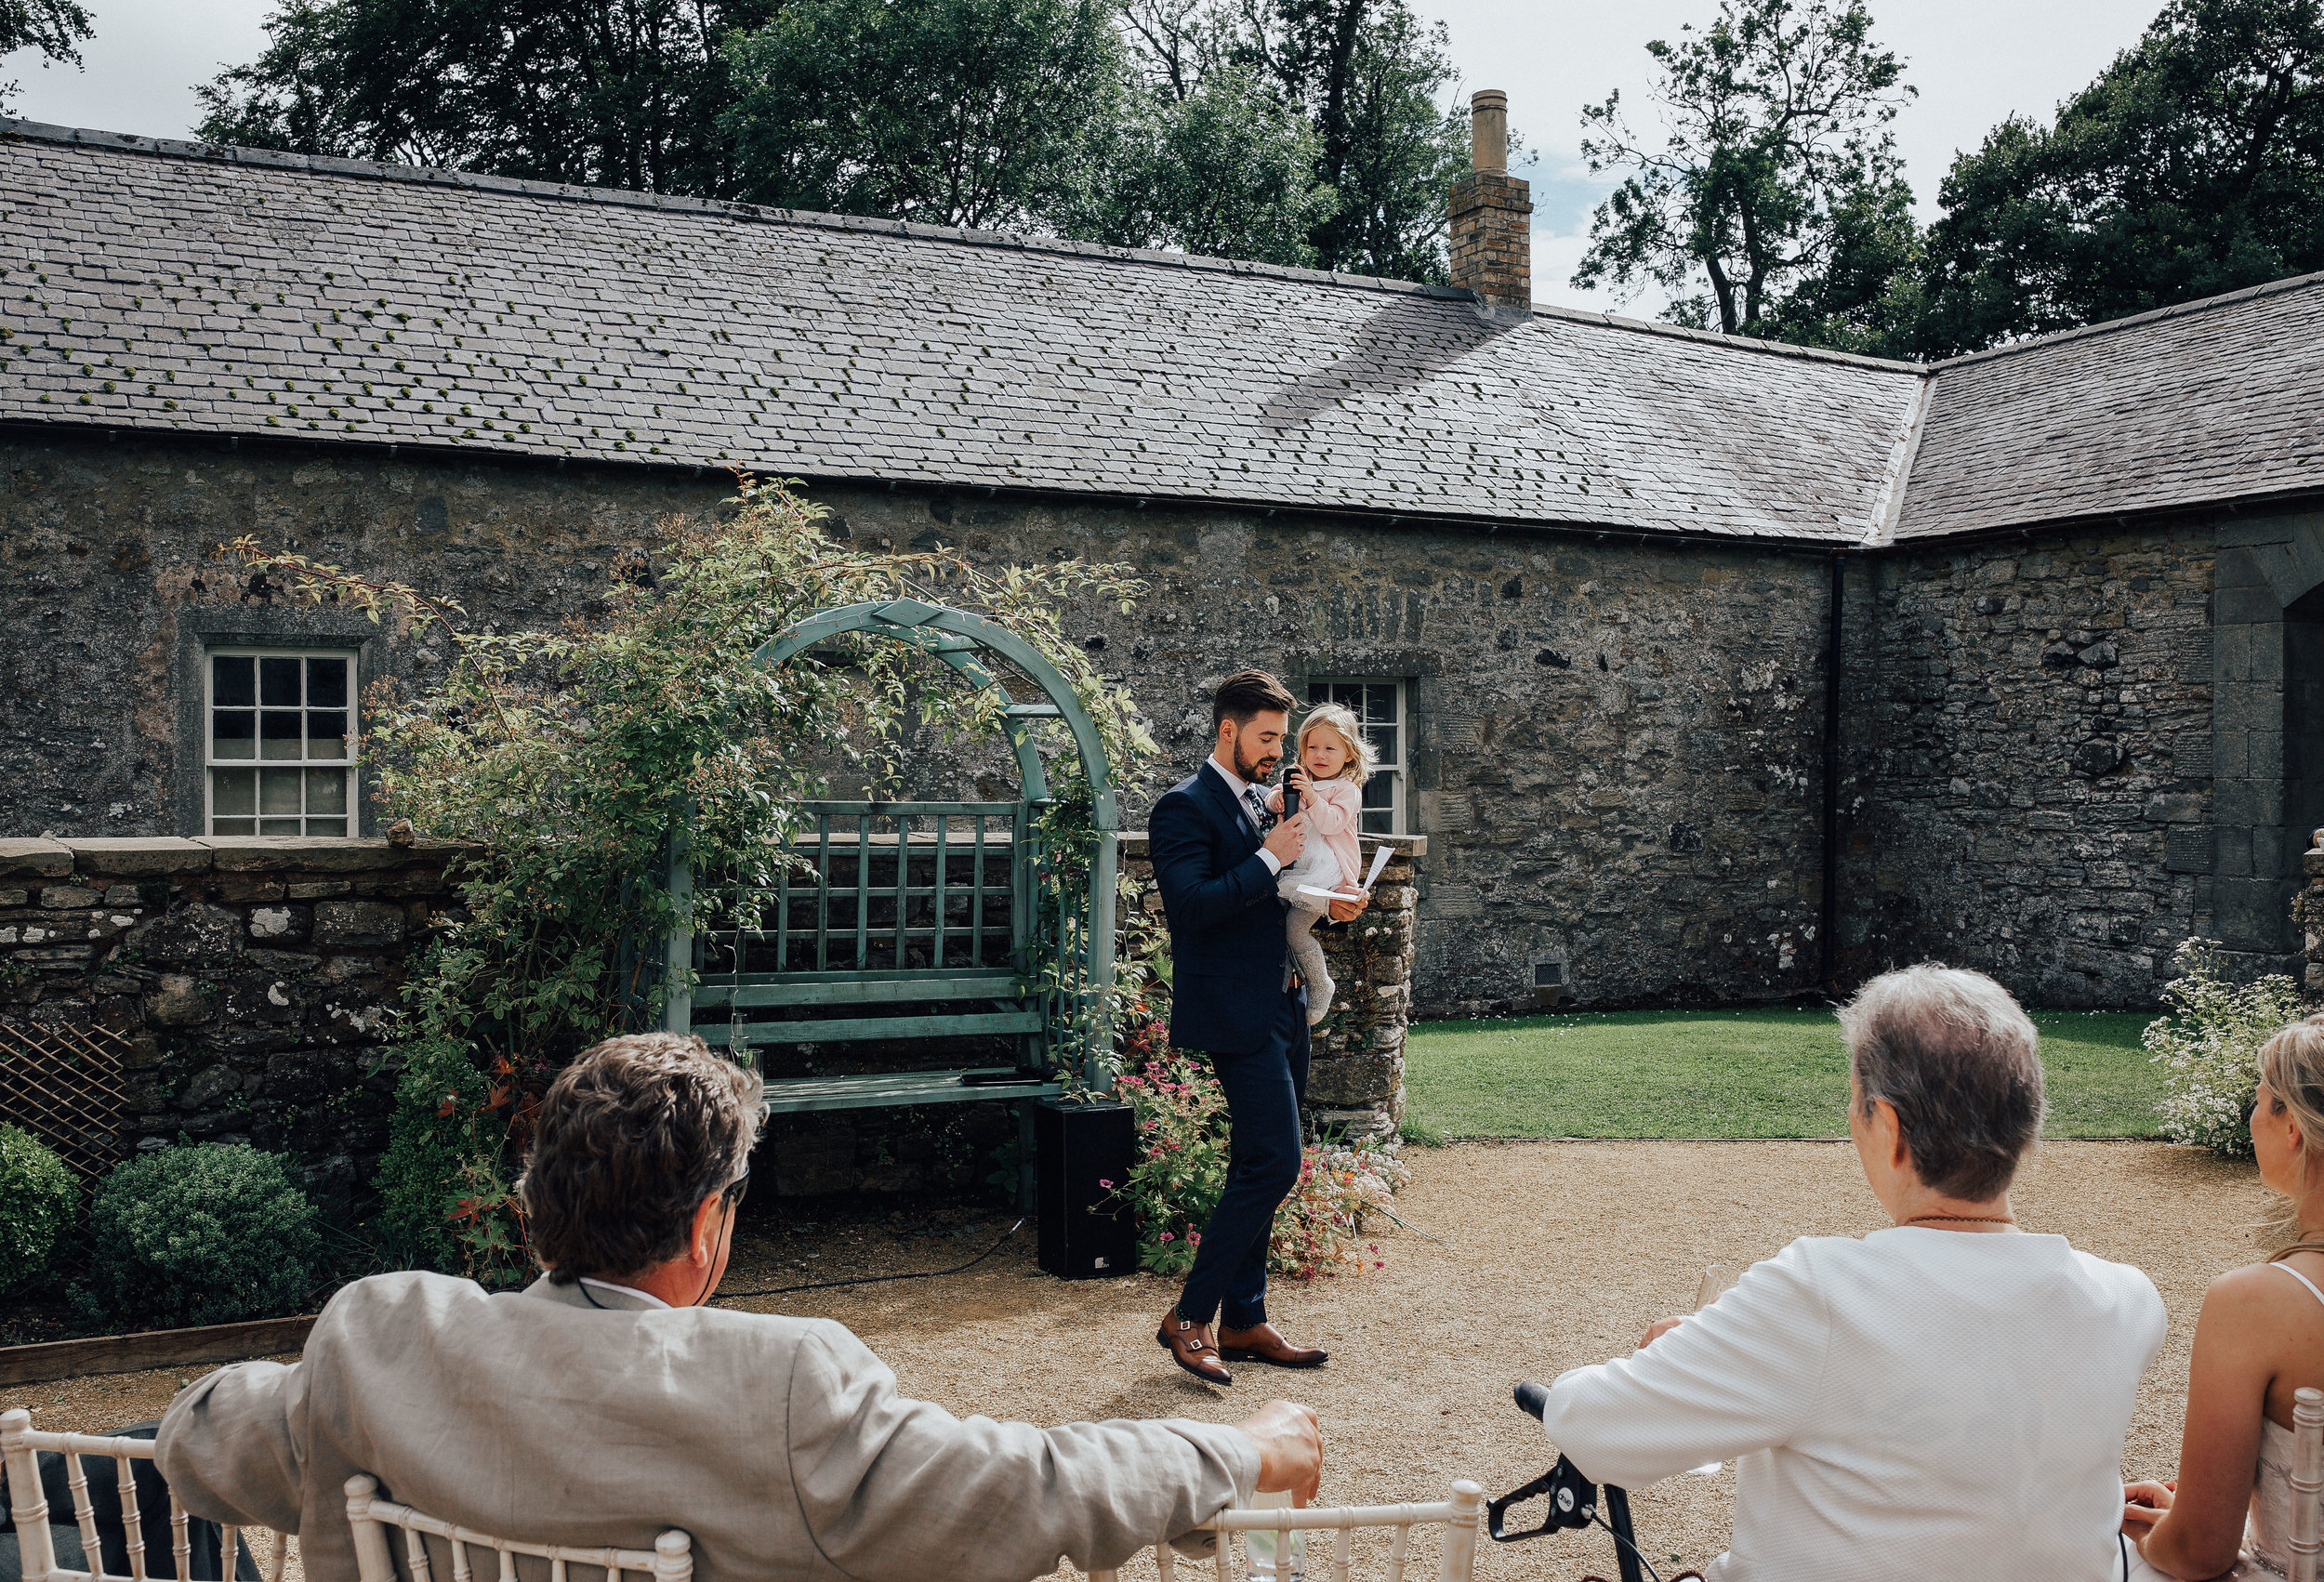 PJ_PHILLIPS_PHOTOGRAPHY_EDINBURGH_WEDDERBURN_BARNS_WEDDING_EDINBURGH_WEDDING_PHOTOGRAPHER_116.jpg